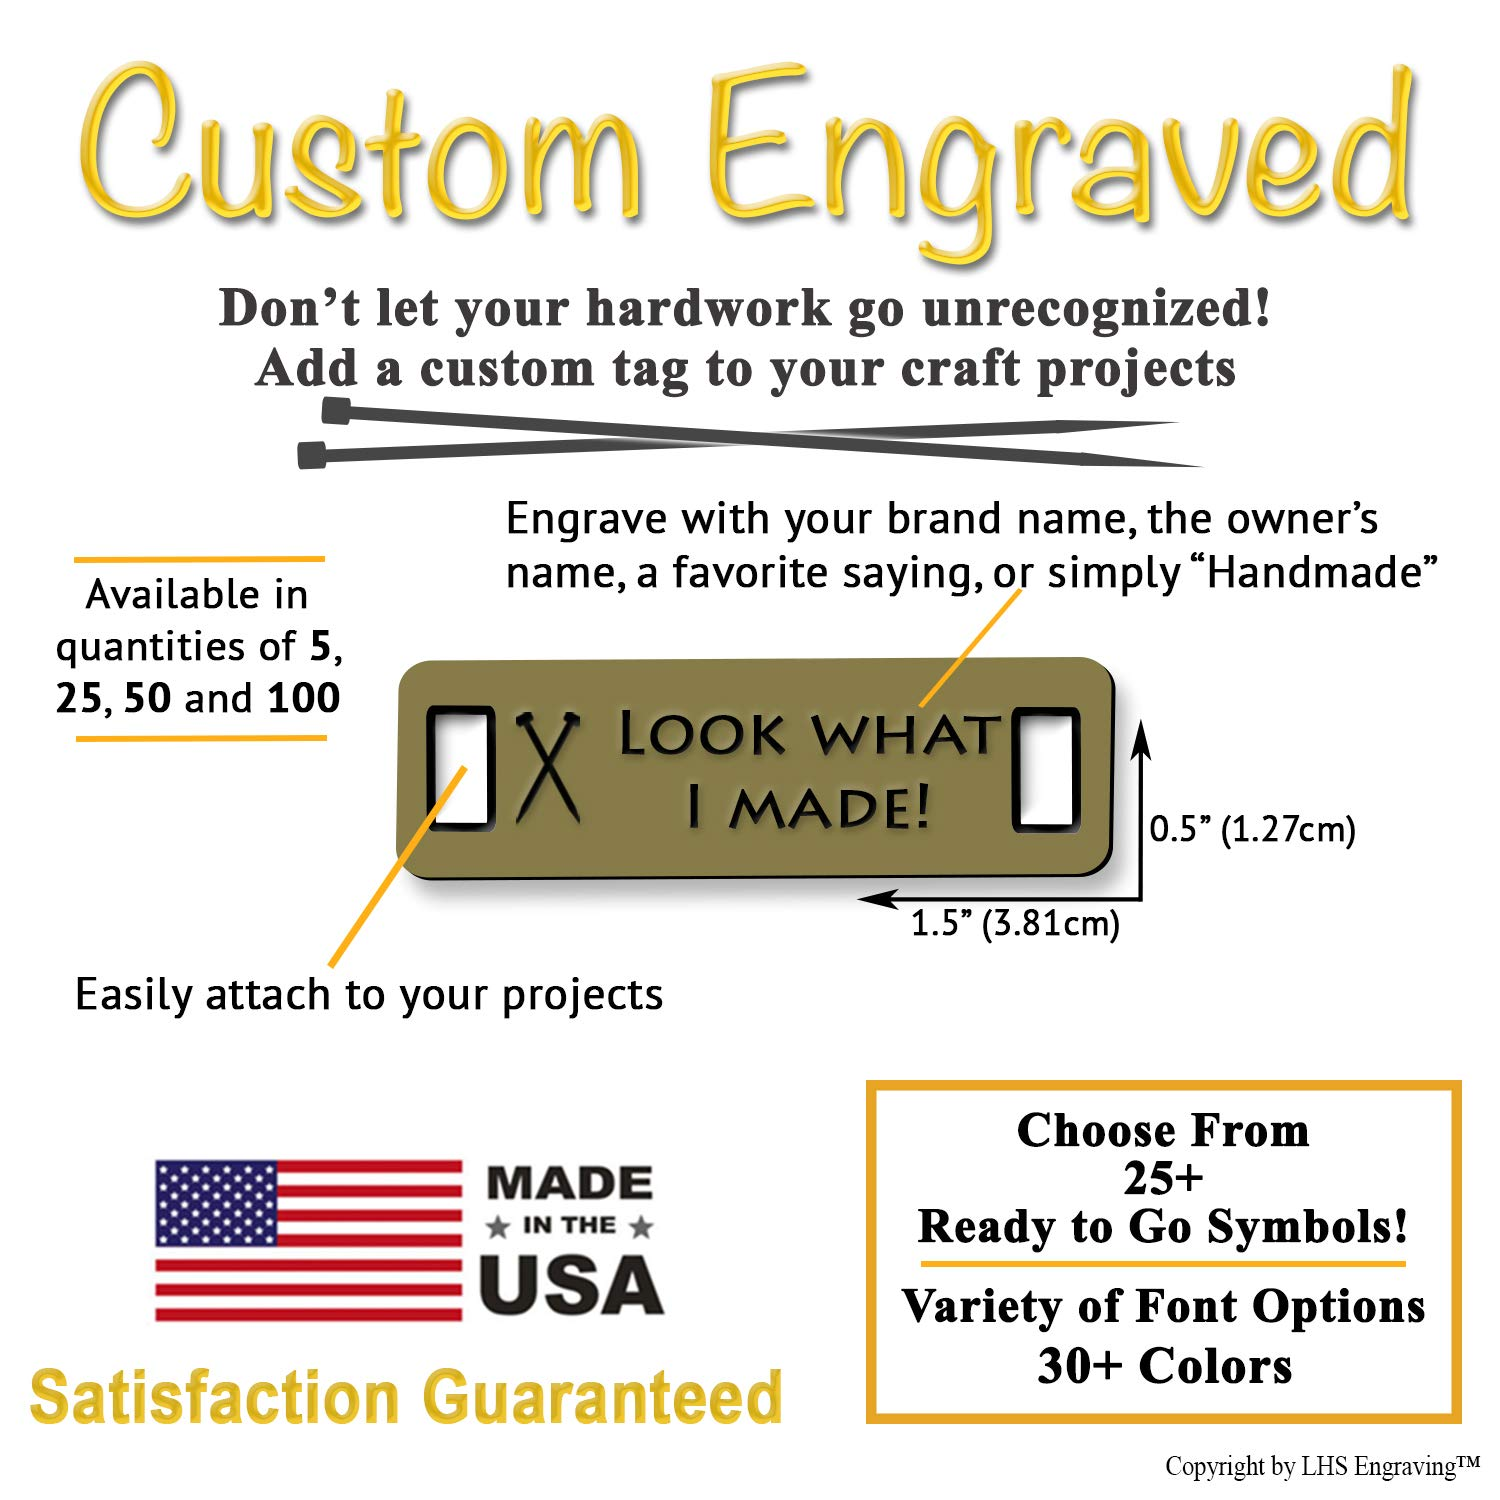 LHS Engraving | Personalized Handmade Tags Custom Engraved Brushed Brass Plastic Sewing & Knitting Notions Black Lettering USA - M6 by LHS Engraving (Image #3)